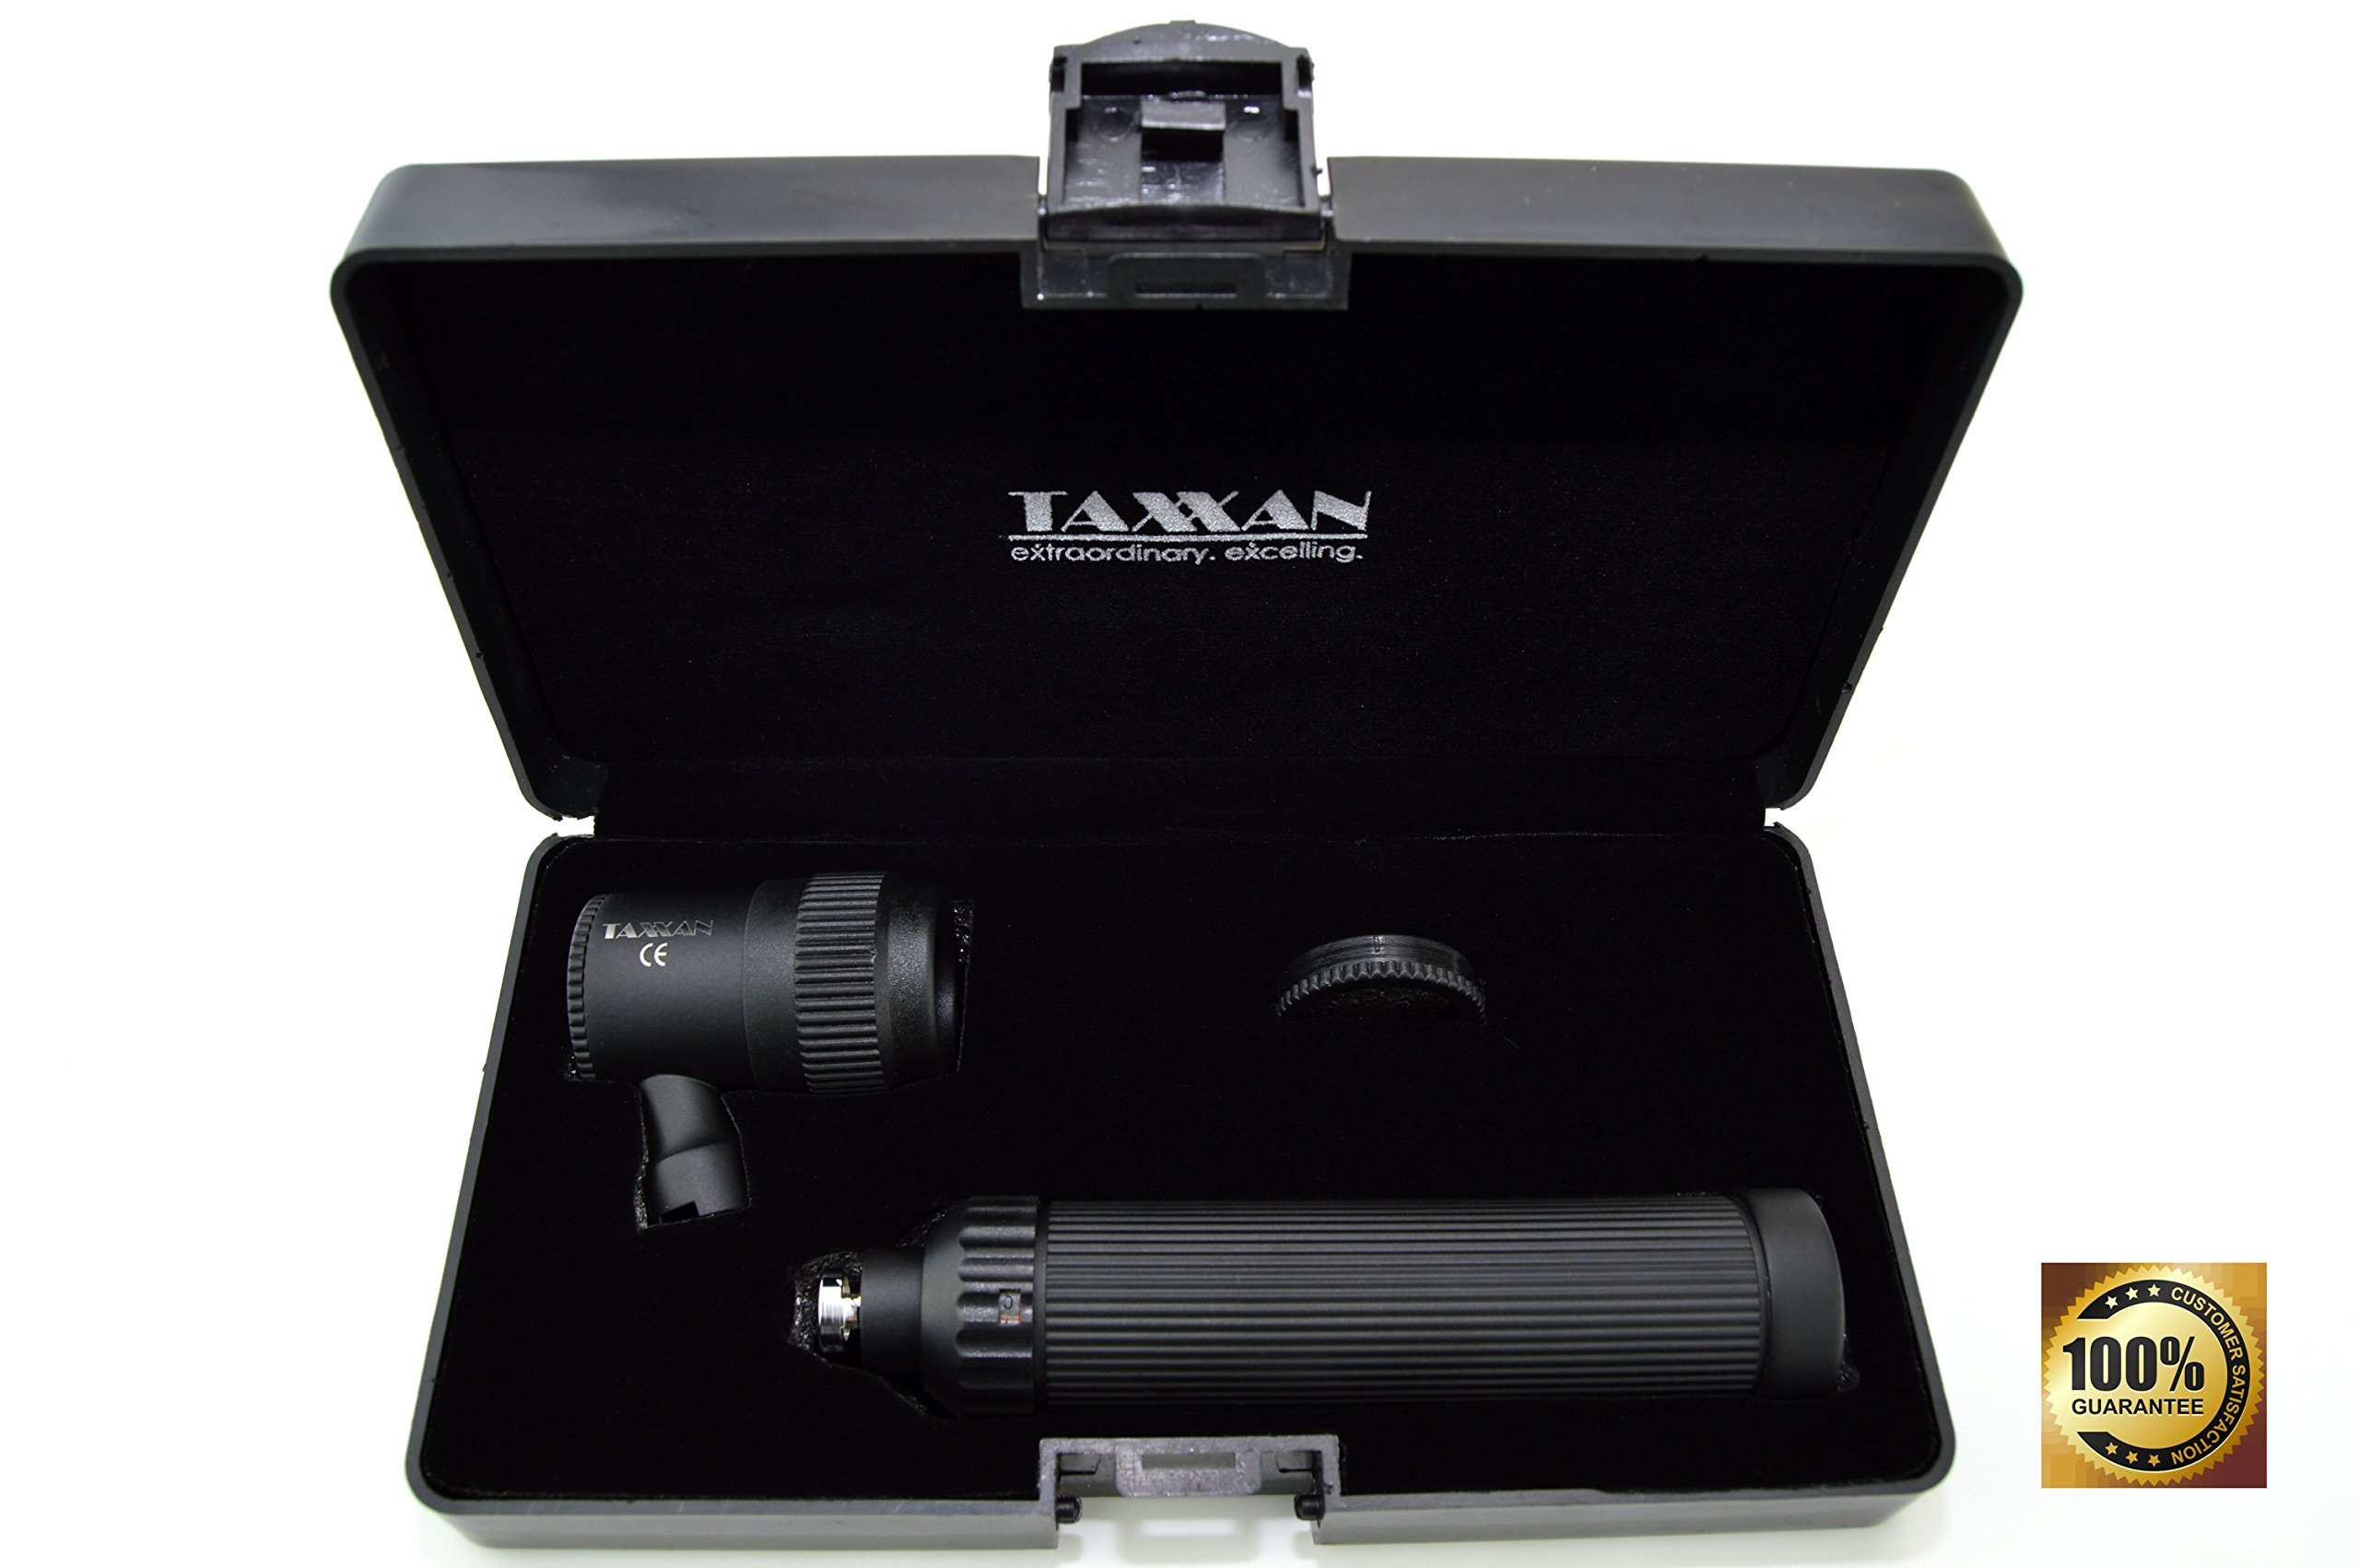 TAXXAN BLACK DERMATOSCOPE SKIN DIAGNOSTIC SET 10X ZOOMABLE LENSE WITH SCALE